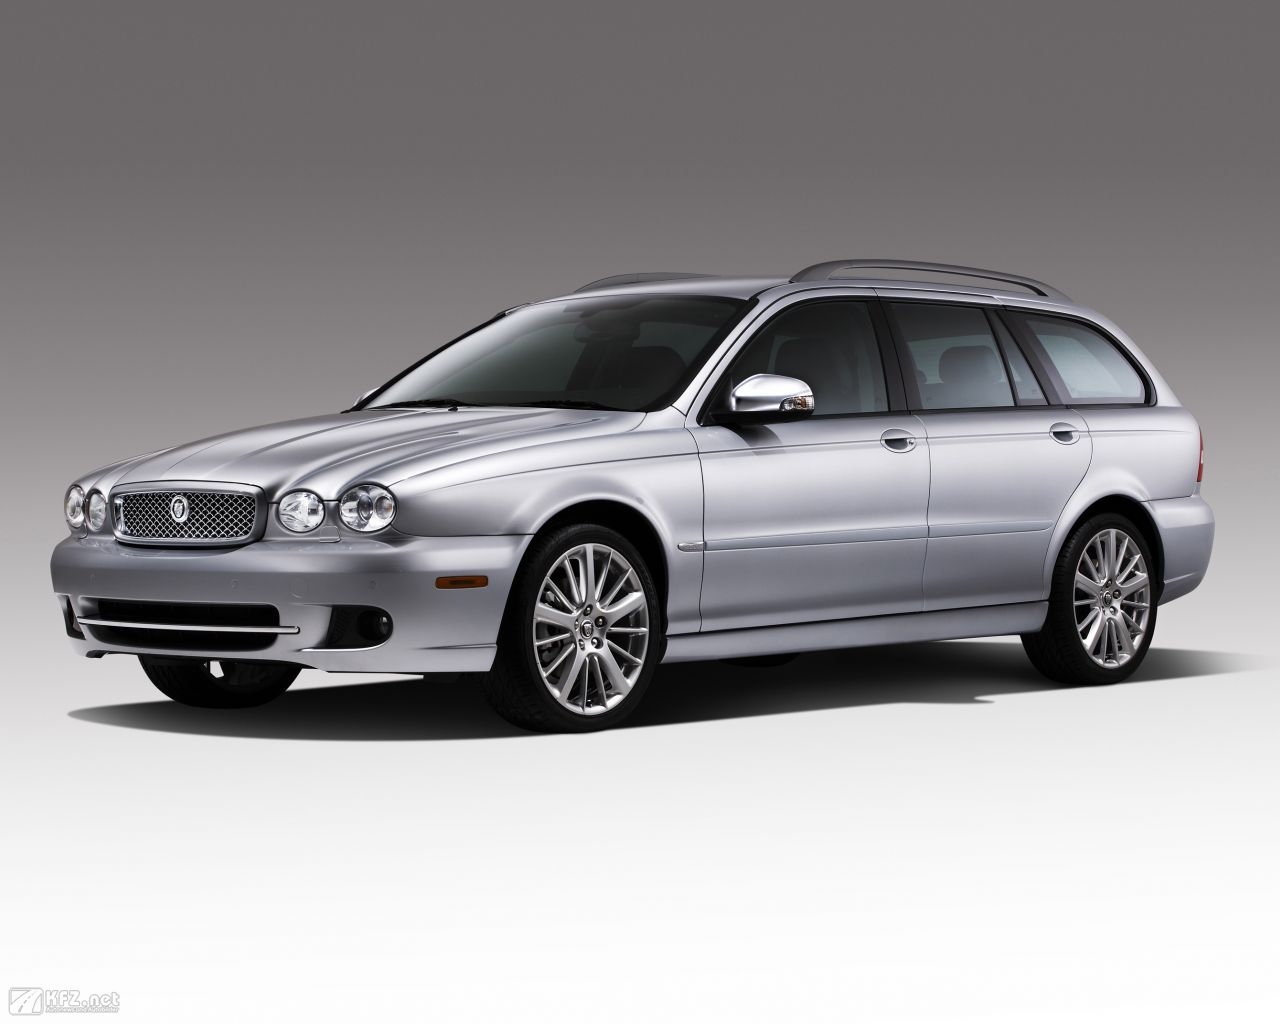 jaguar-x-type-1280x1024-161